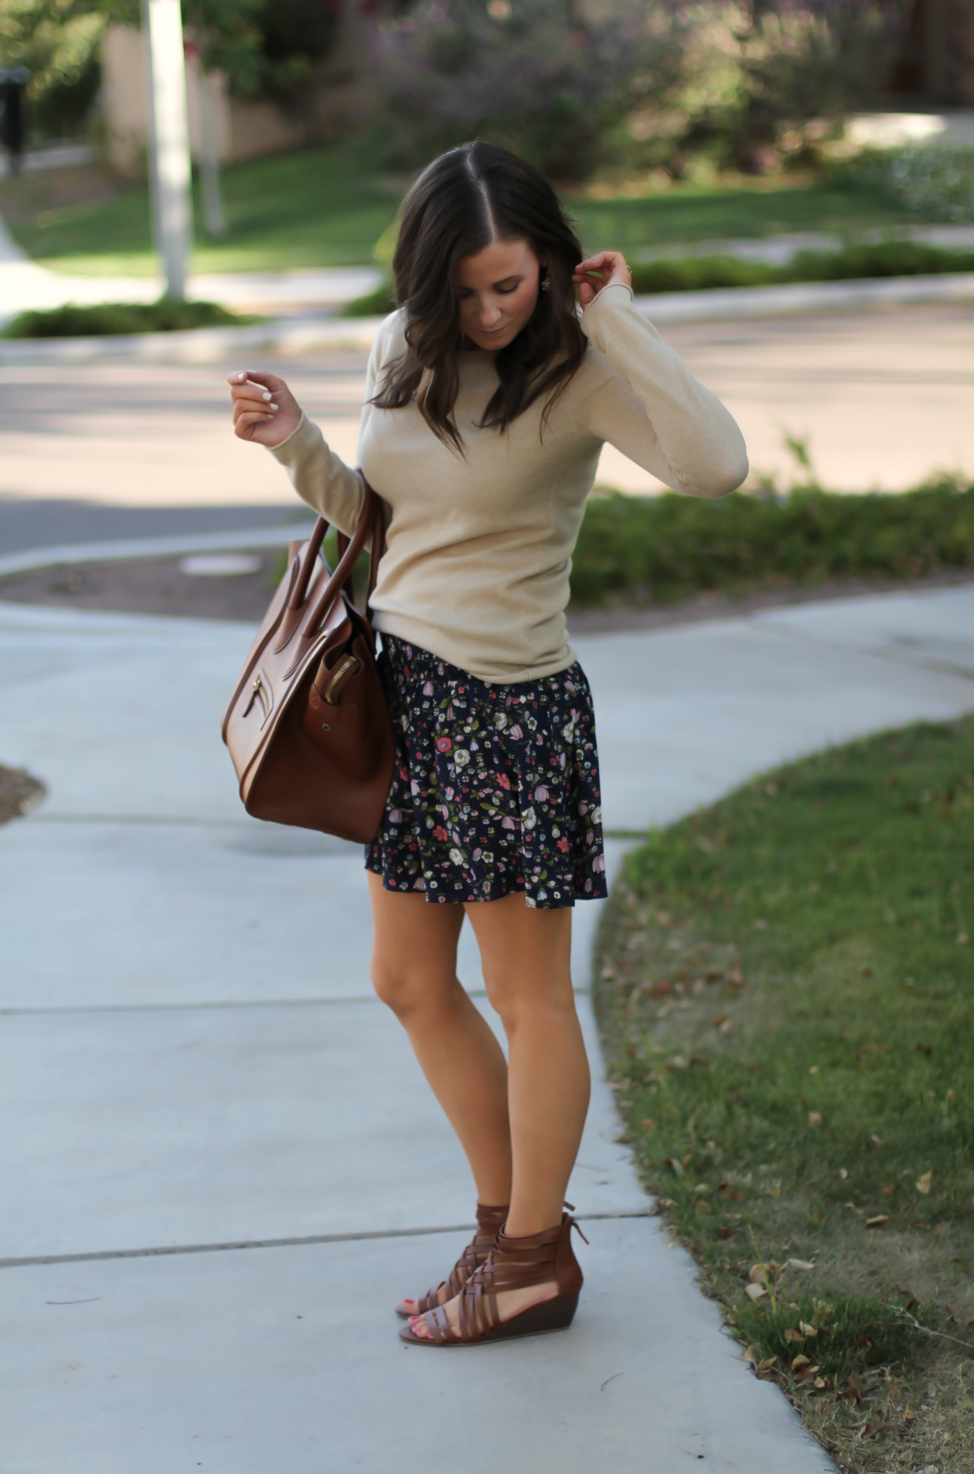 Navy Floral Shorts, Tan Cashmere Sweater, Brown Gladiator Sandals, Brown Leather Tote, Rebecca Taylor, J.Crew, Candies, Celine 5